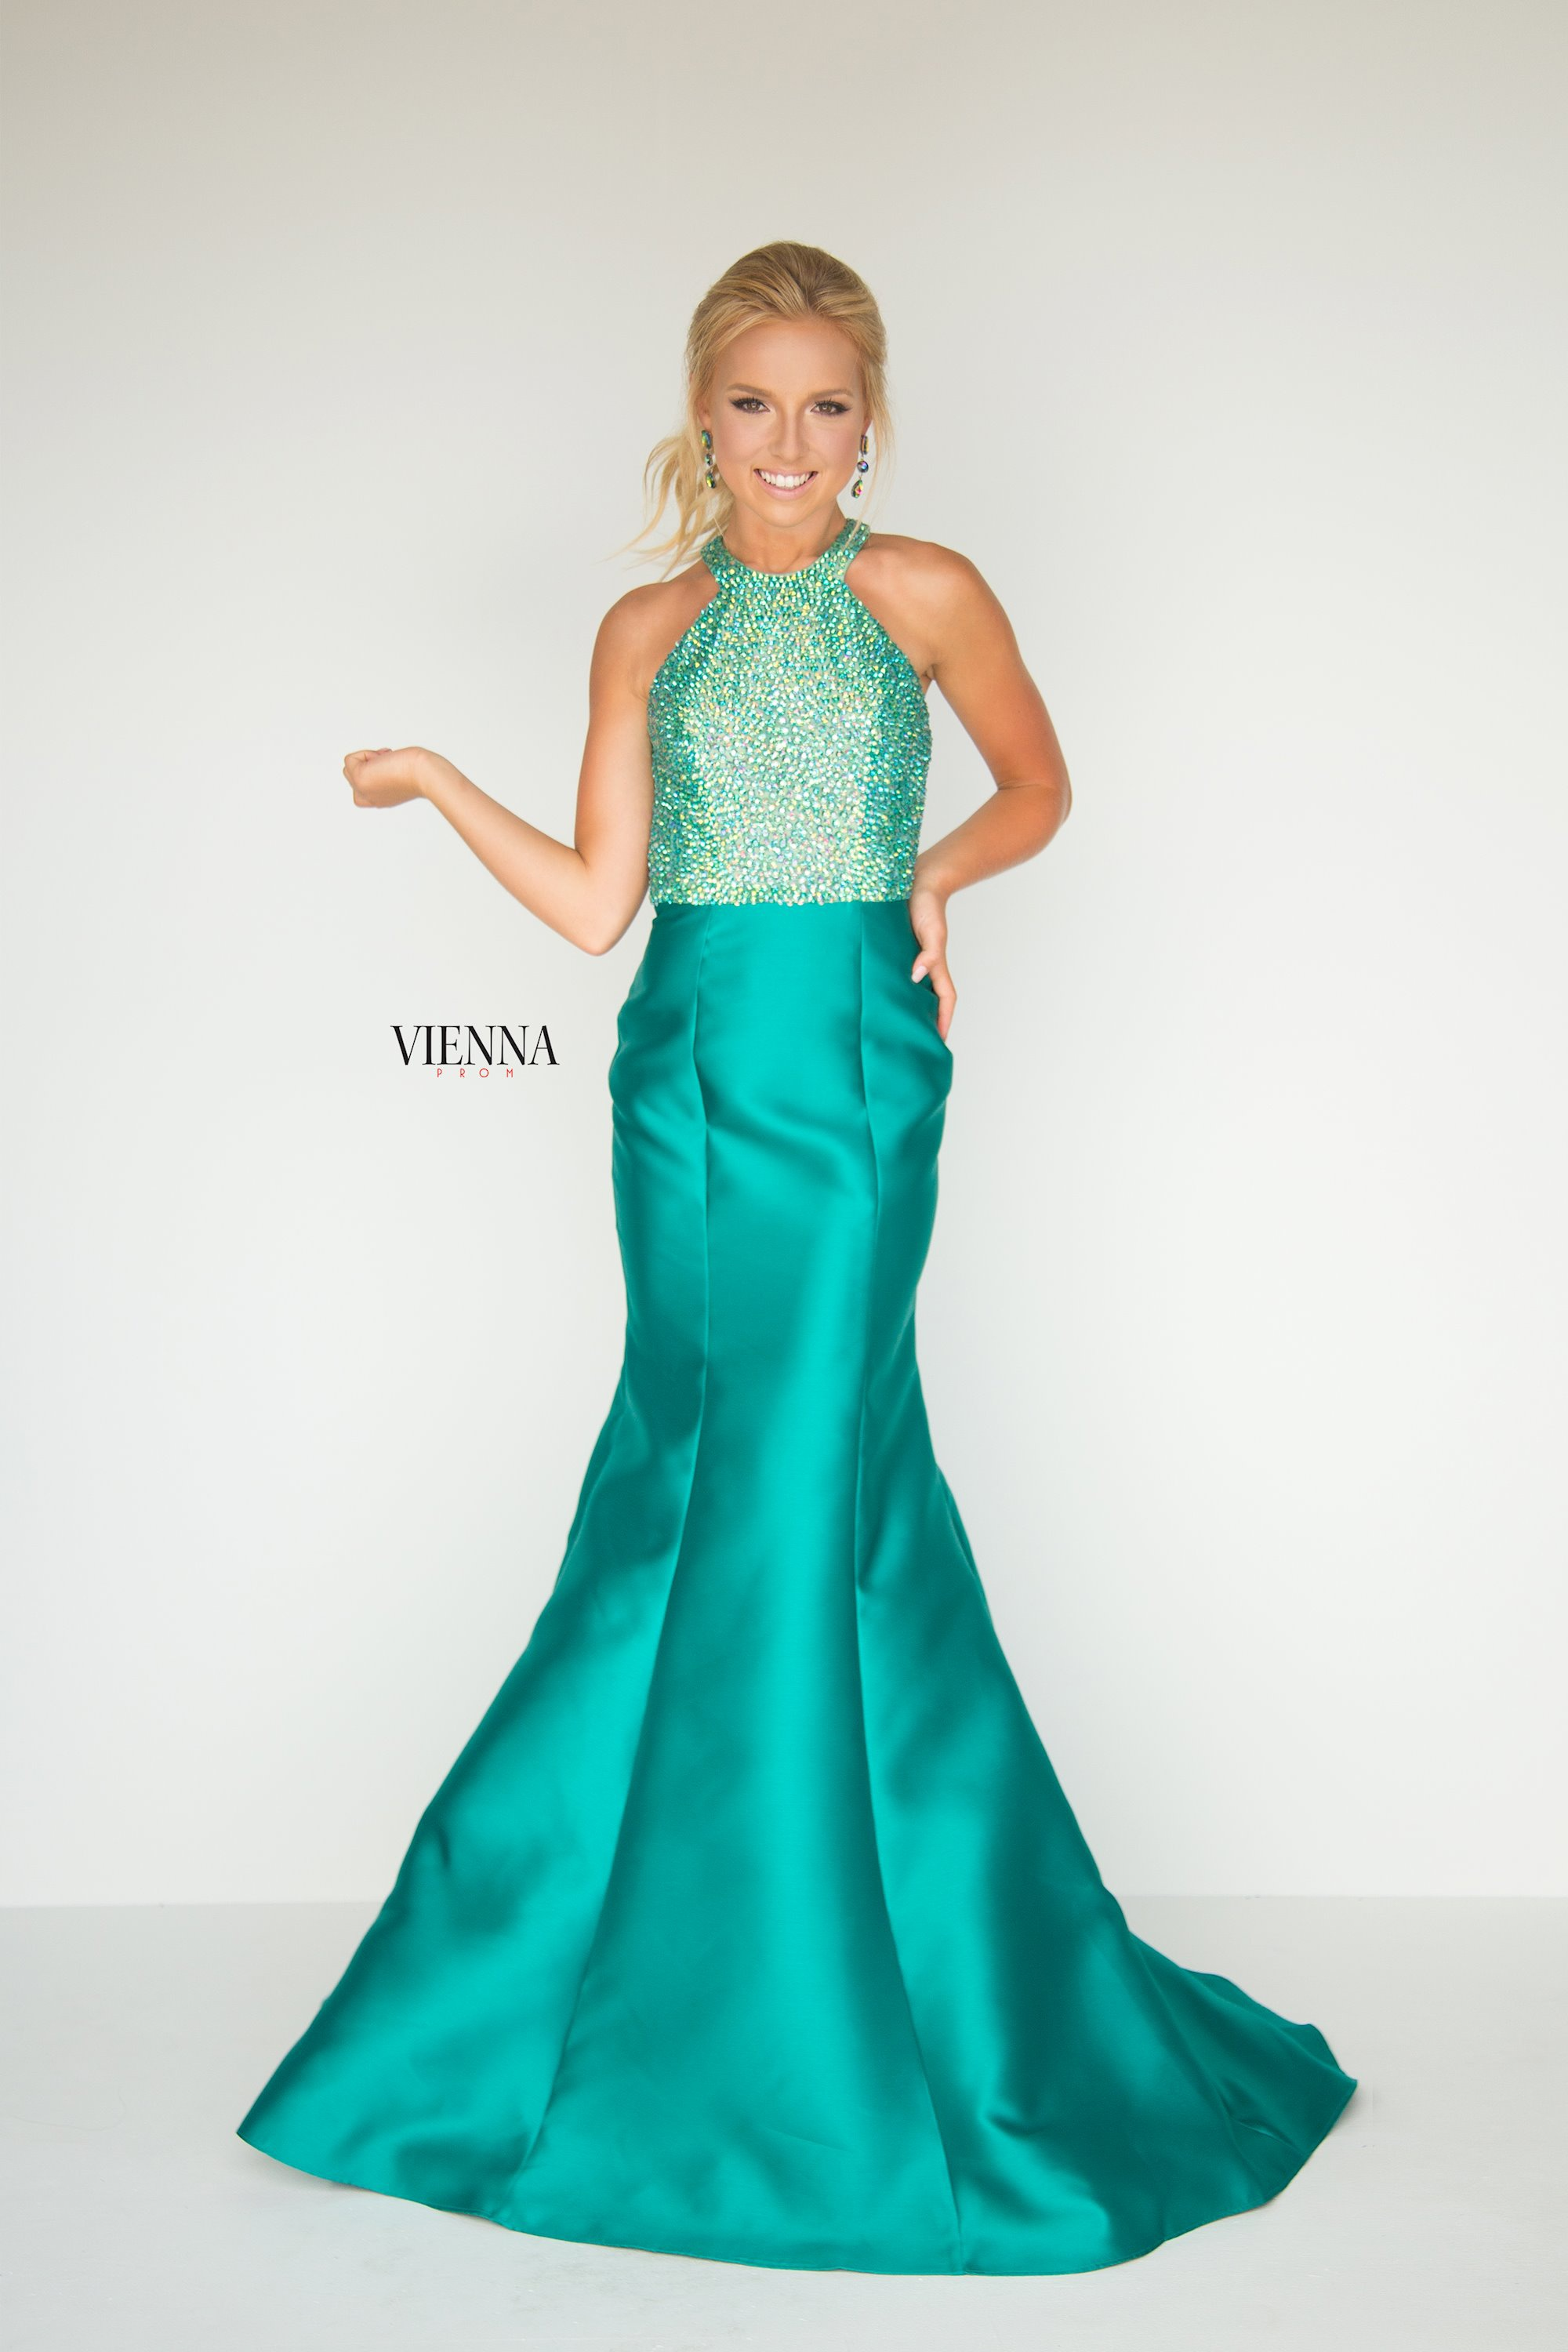 Style 8281 Vienna Green Size 18 Halter Backless Tall Height Mermaid Dress on Queenly